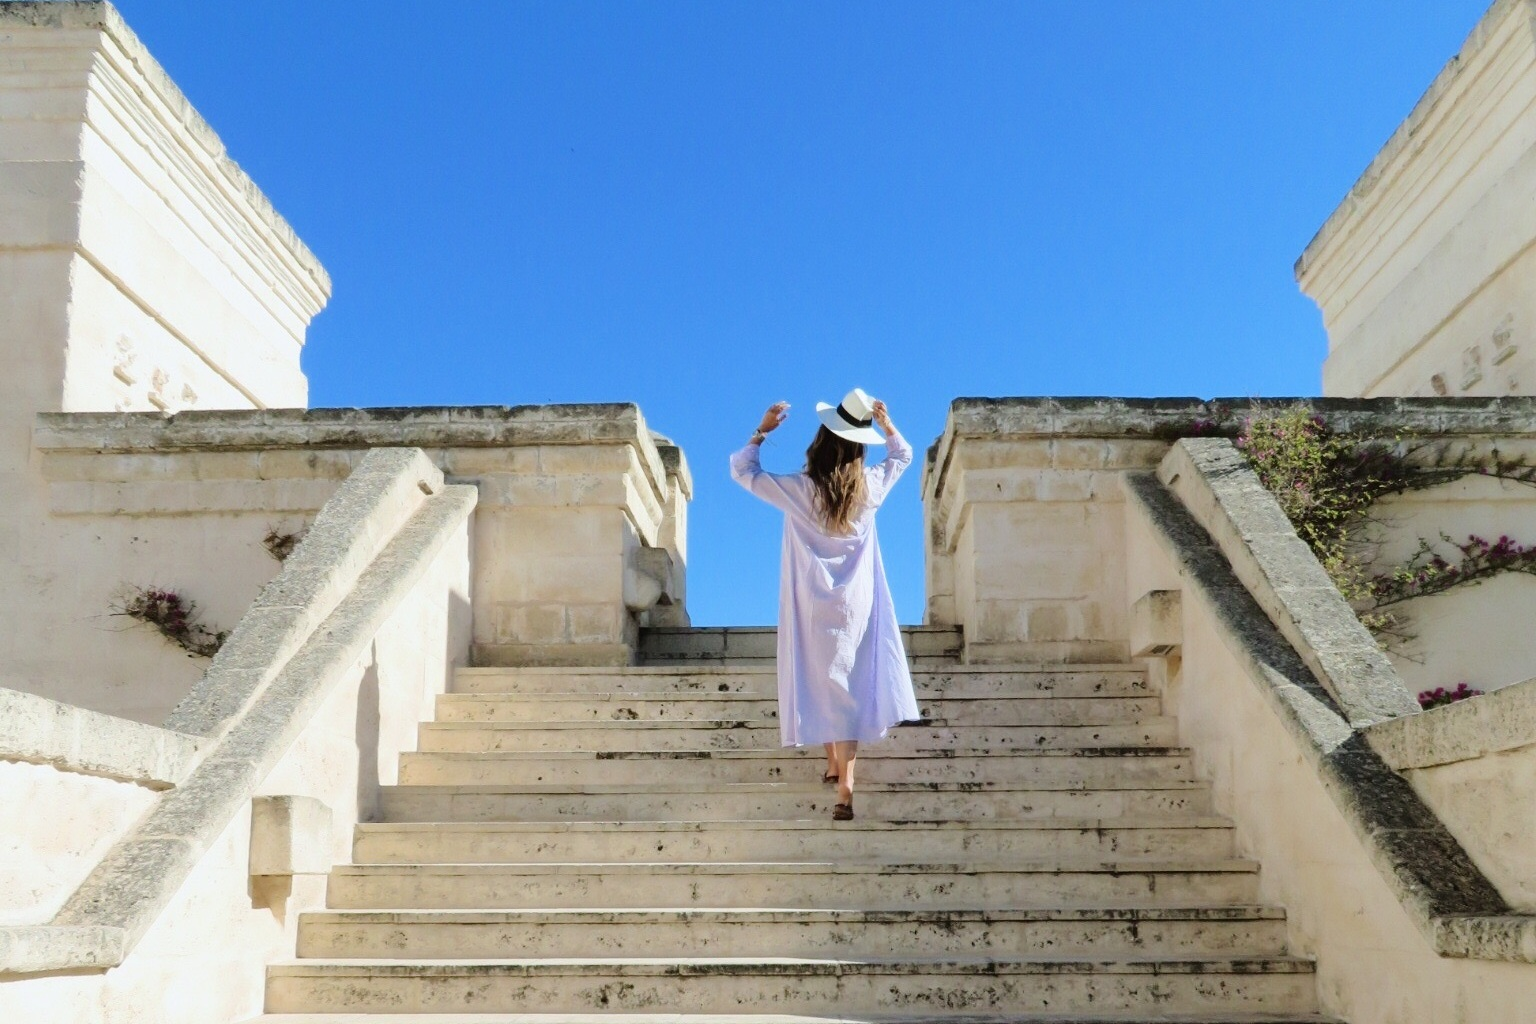 Climbing the steps at  Borgo Egnazia